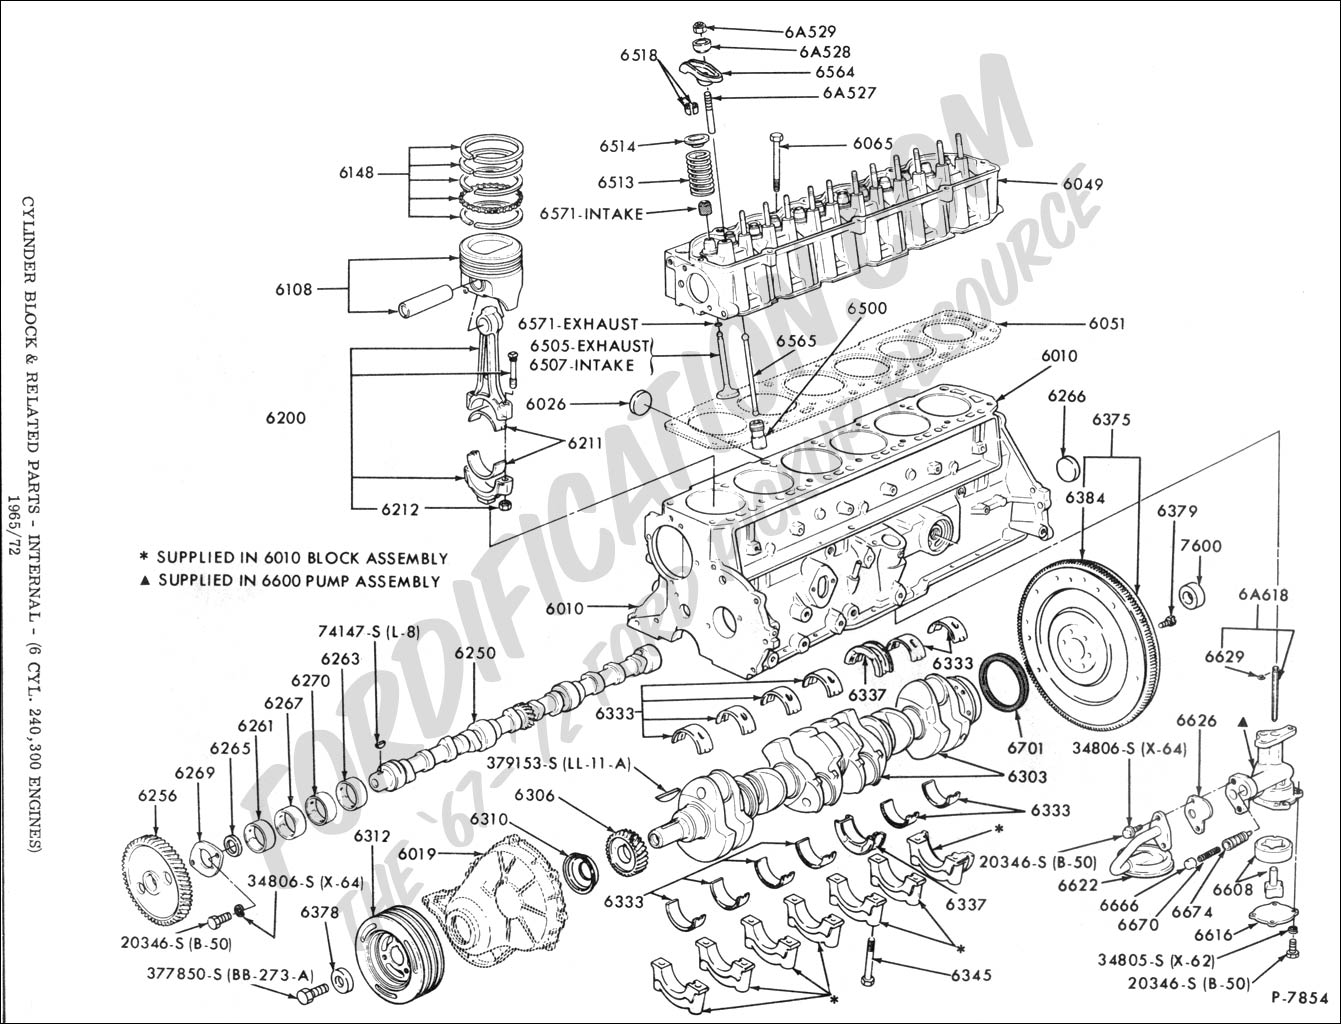 3 4 internal engine diagrams schematics wiring diagrams u2022 rh  schoosretailstores com 95 Camaro 3.4 Engine